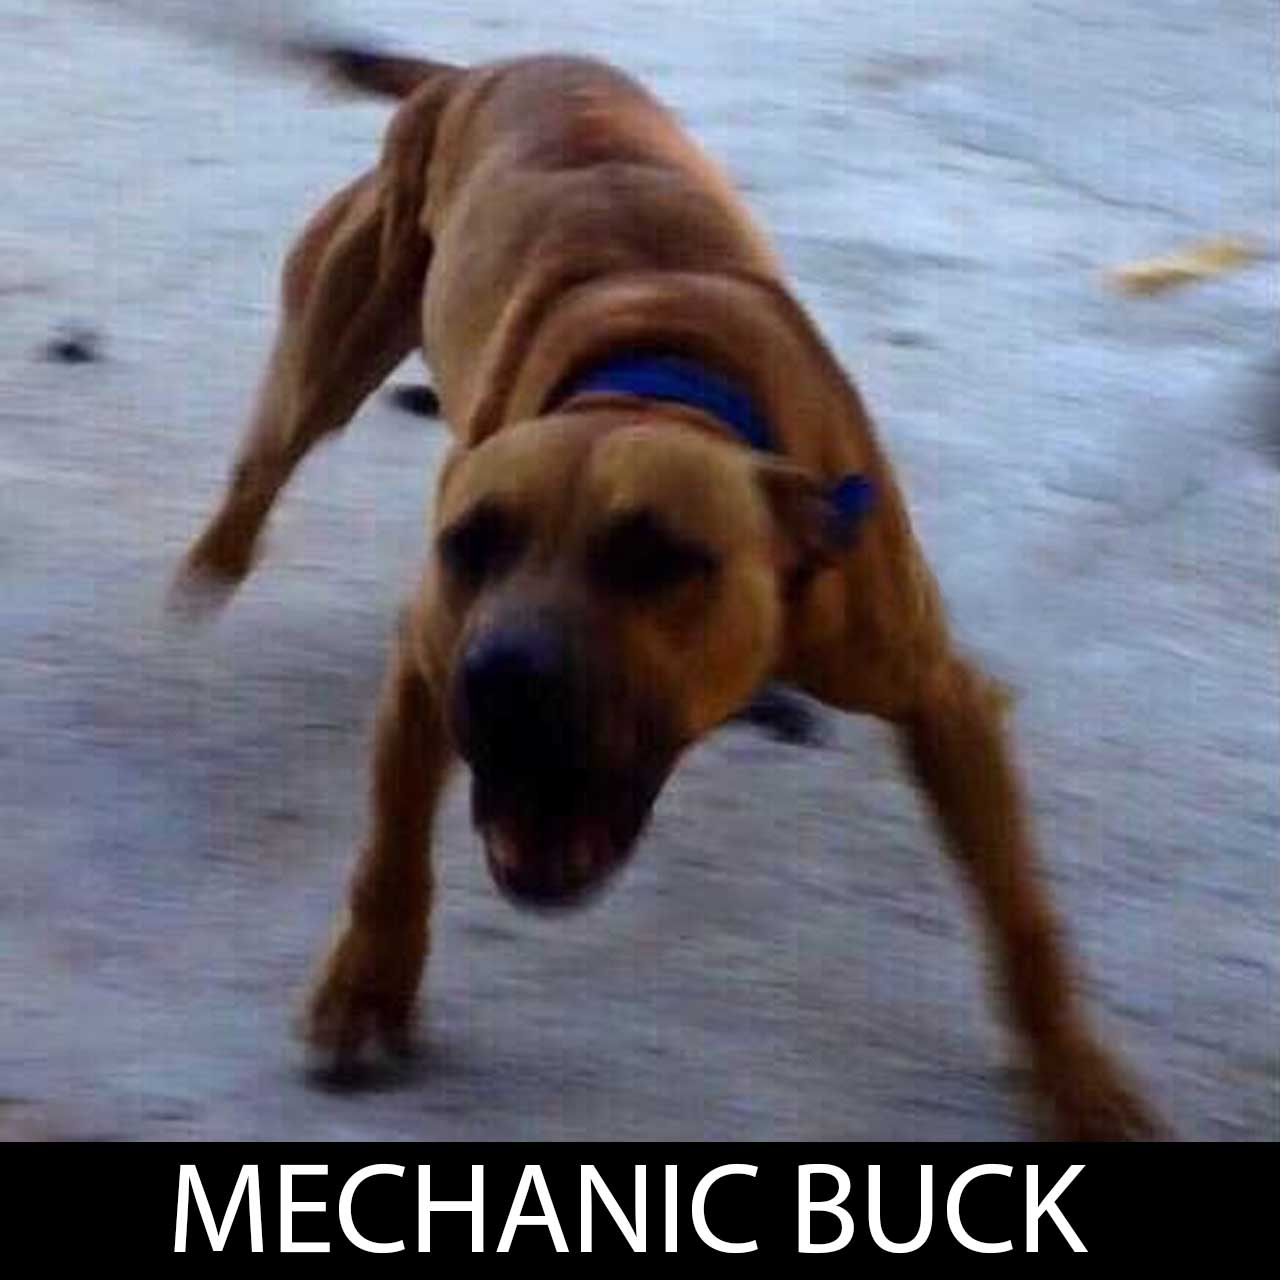 mechanicbuck